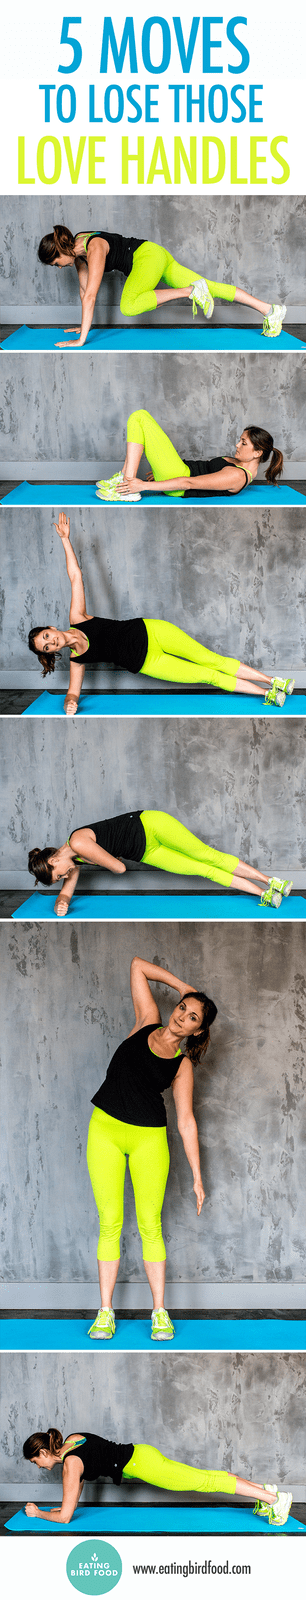 5 Moves to Target Your Love Handles